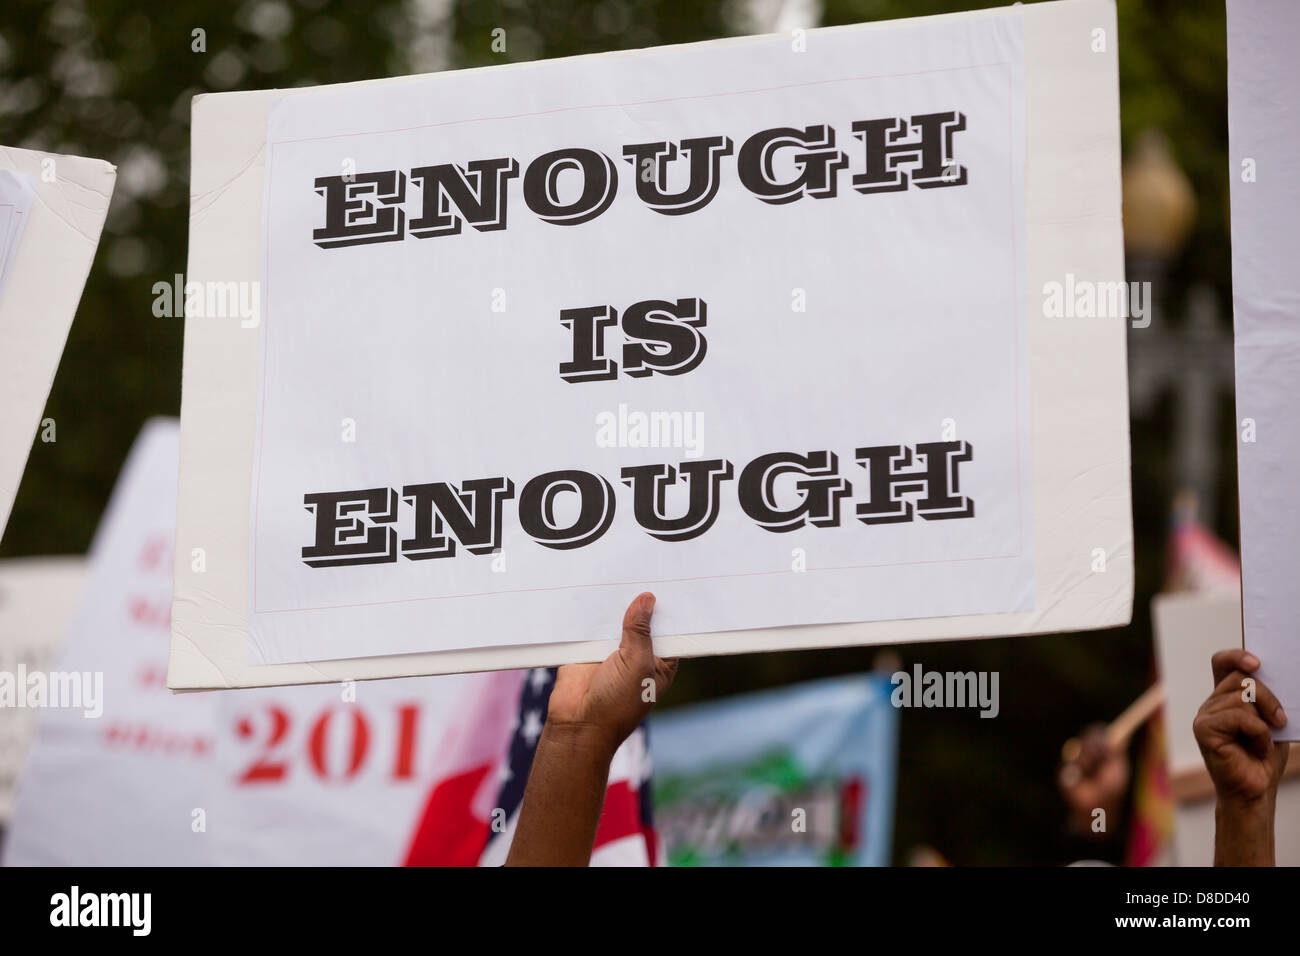 Man holding up an 'Enough is Enough' sign during protest - Stock Image